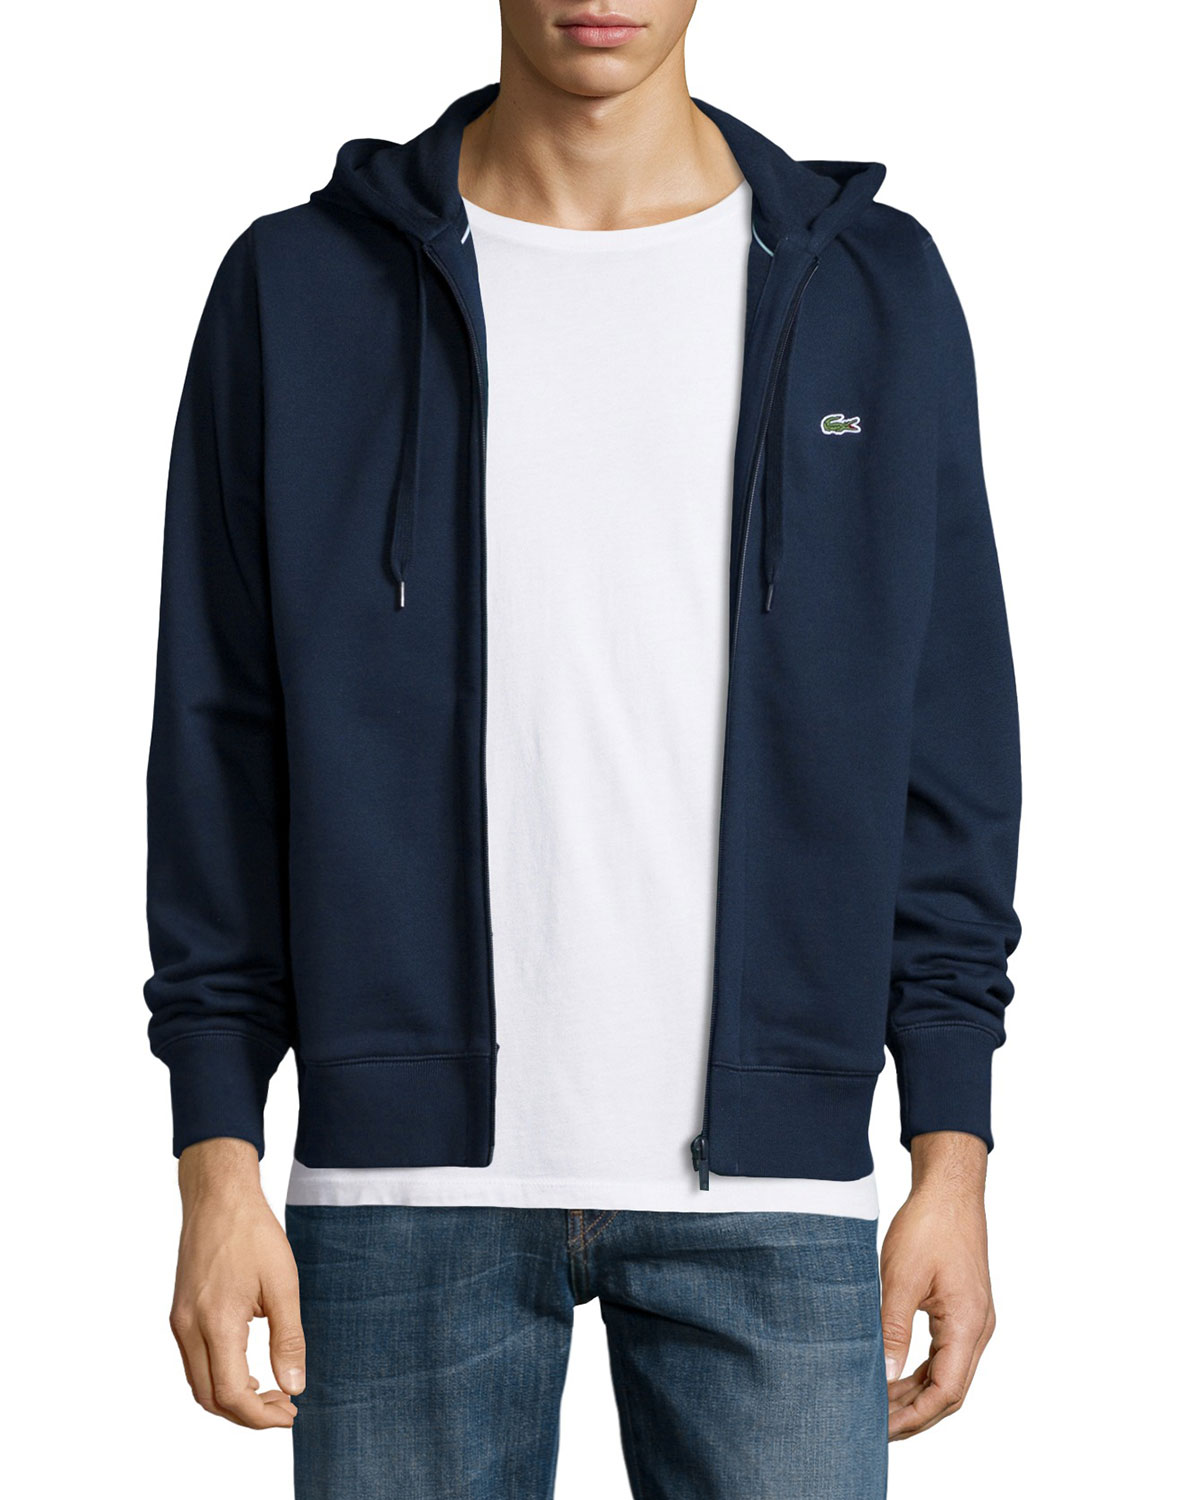 955c09be3f9c2 lacoste Full-Zip Fleece Hoodie